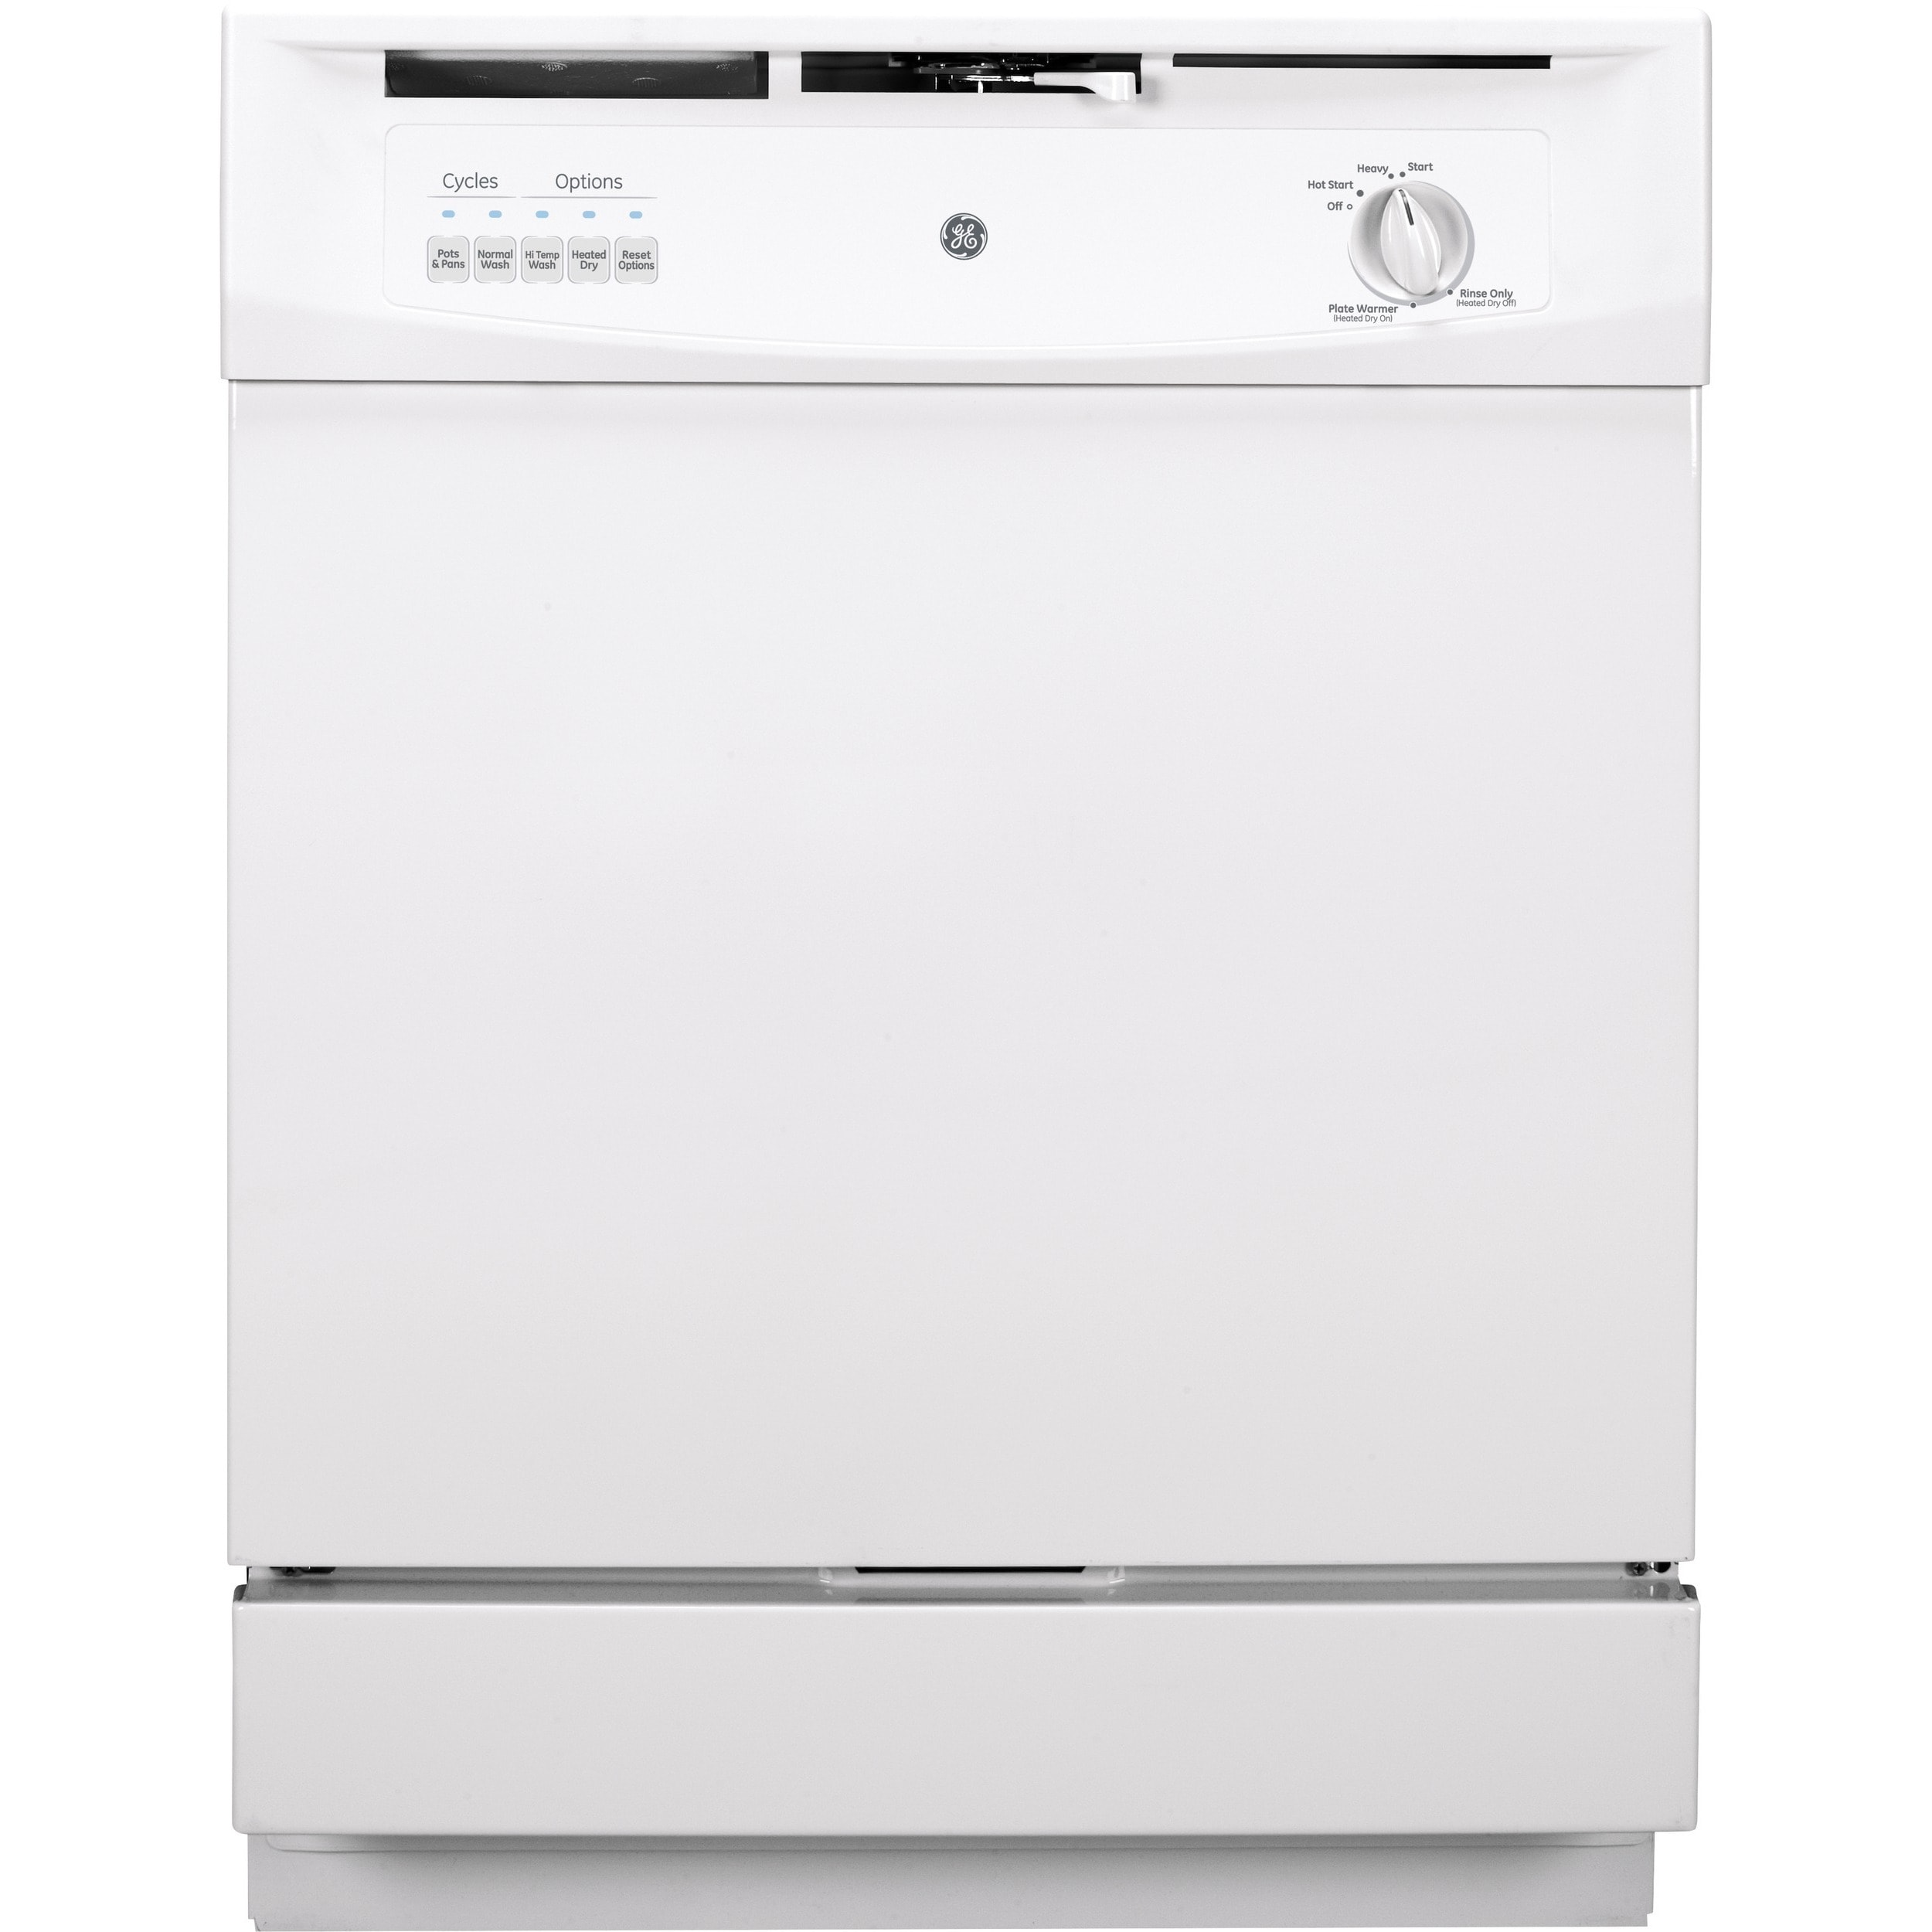 GE Built-In Dishwasher with Power Cord White